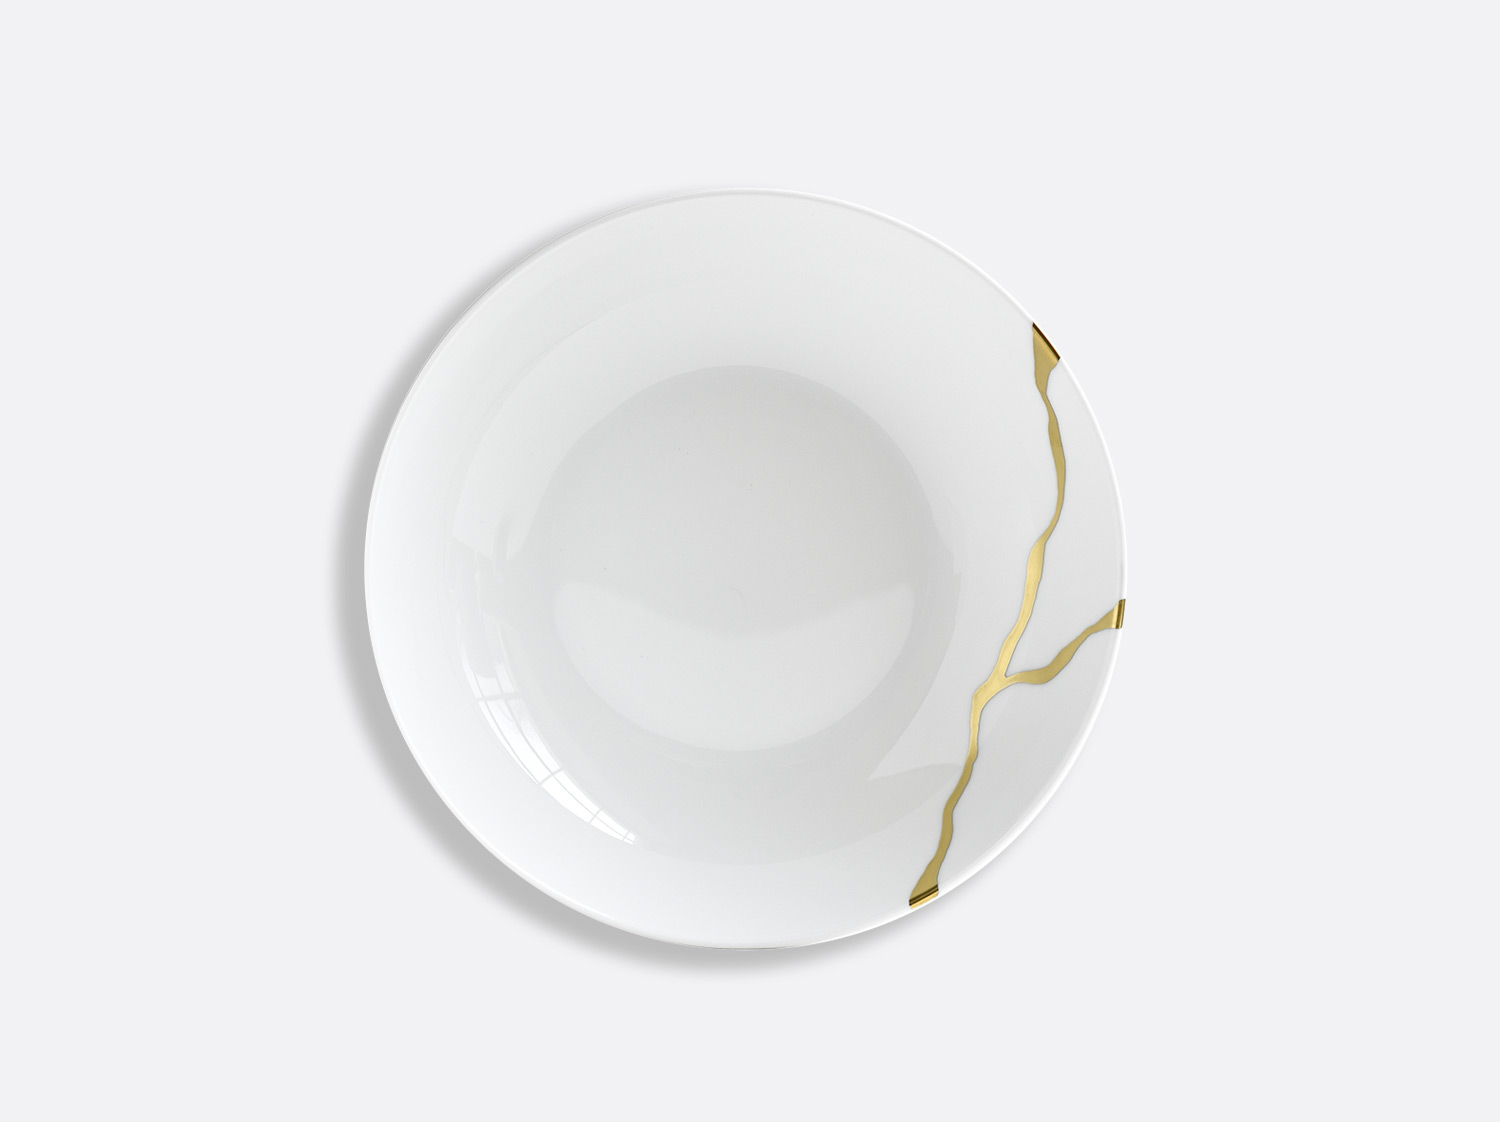 Assiette creuse calotte 19 cm en porcelaine de la collection Kintsugi Bernardaud